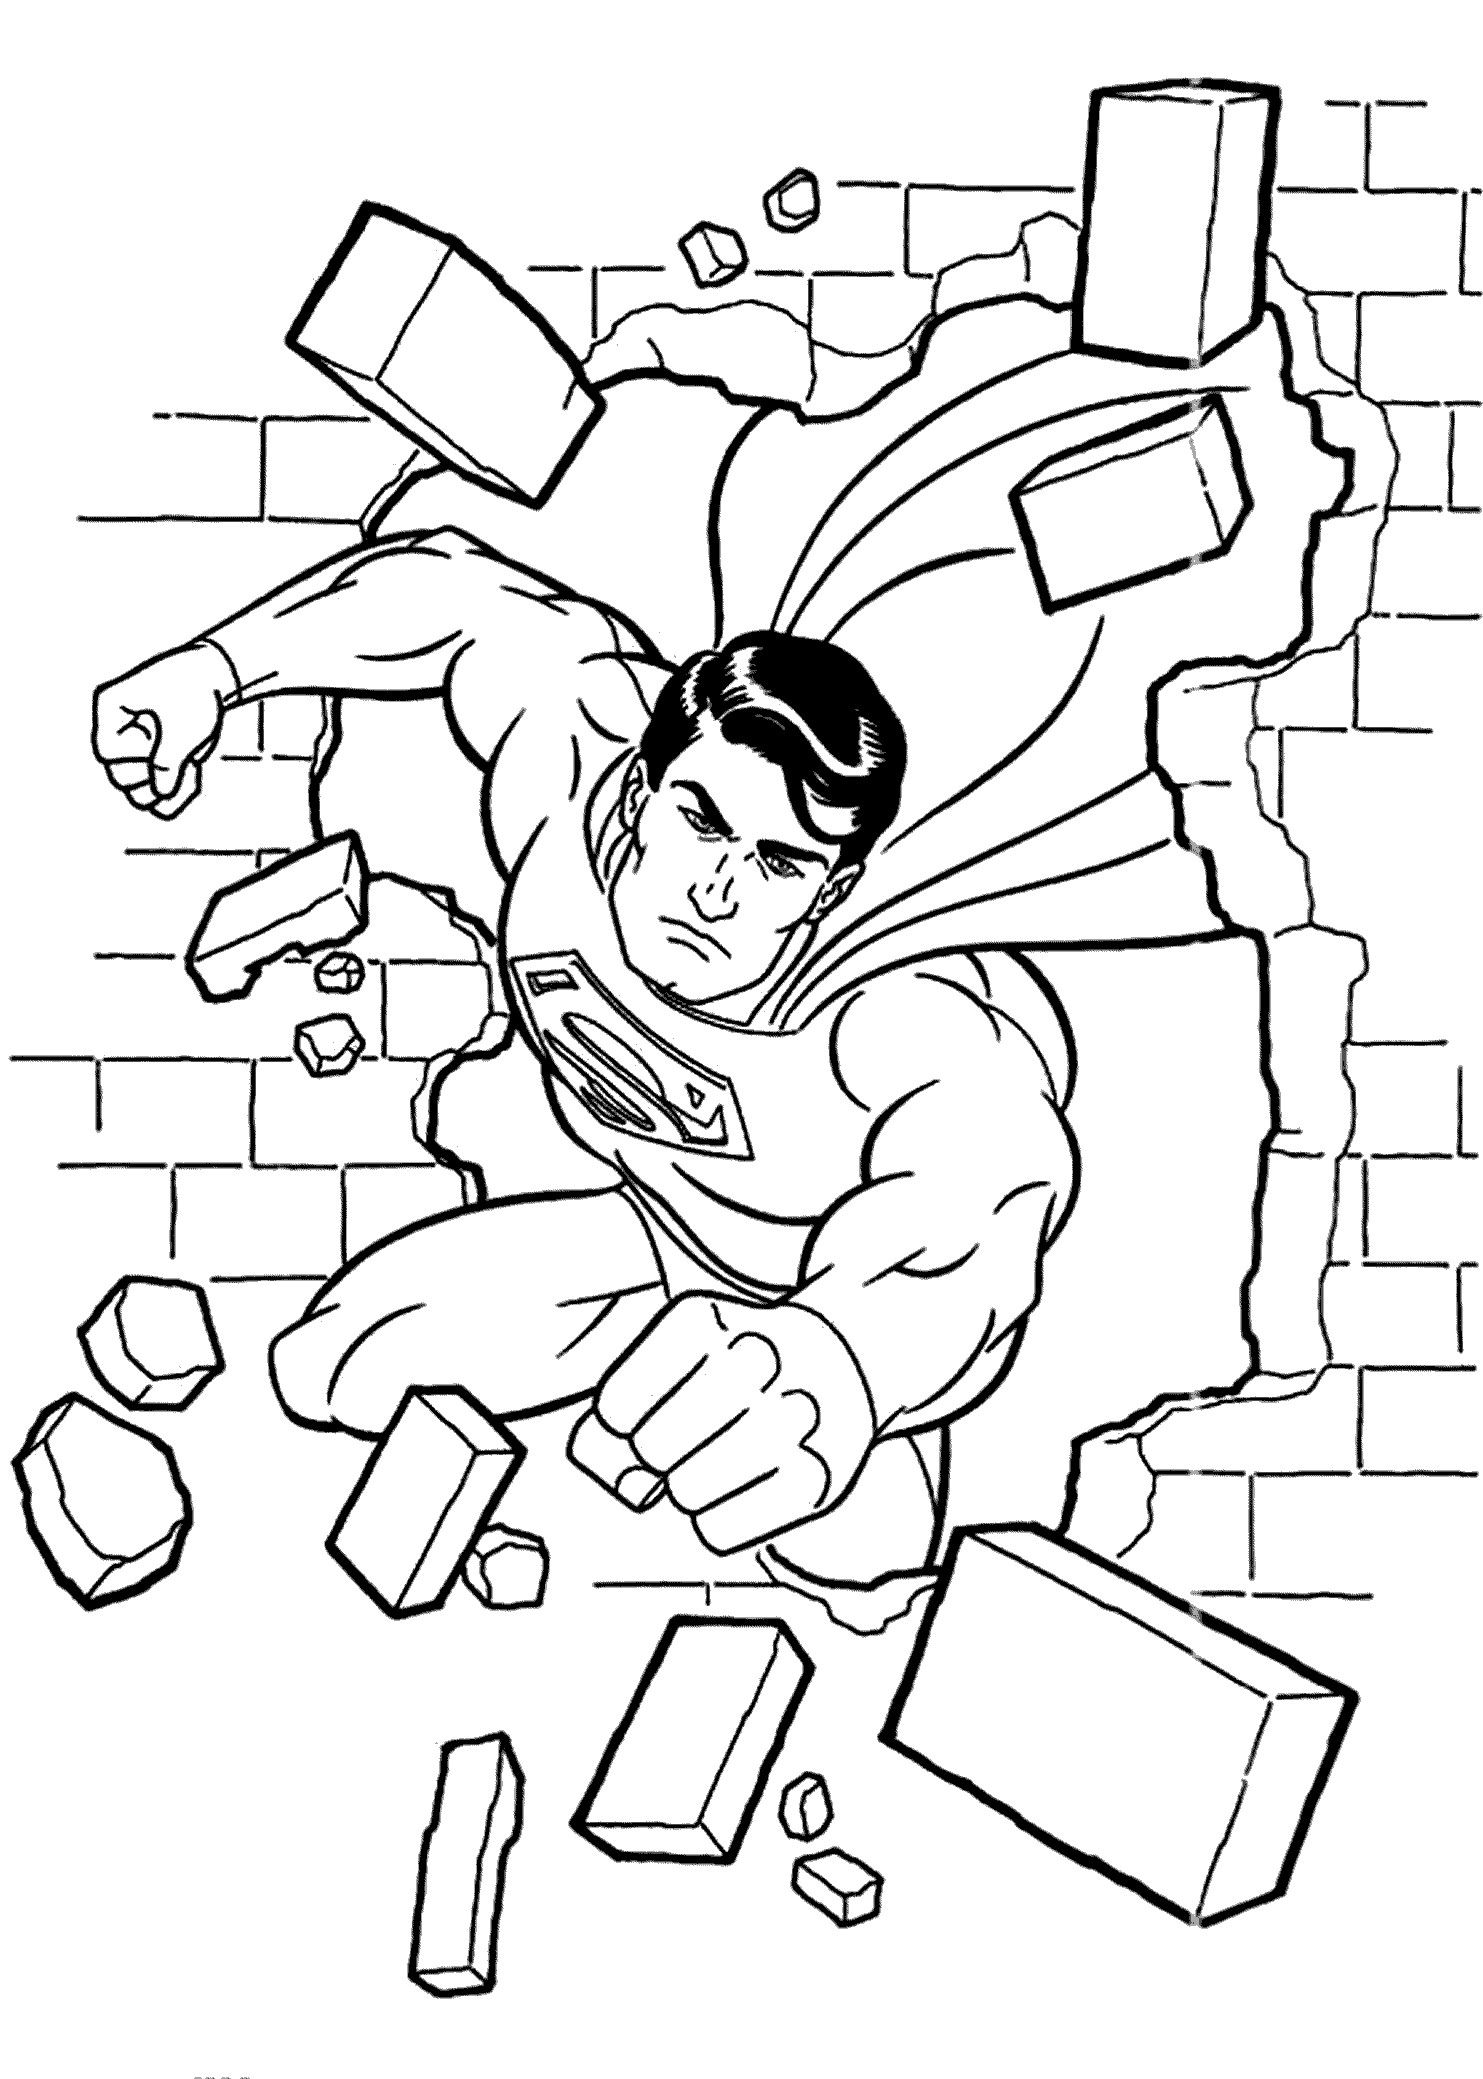 10 Spiderman Coloring Book Pages Spiderman Coloring Book